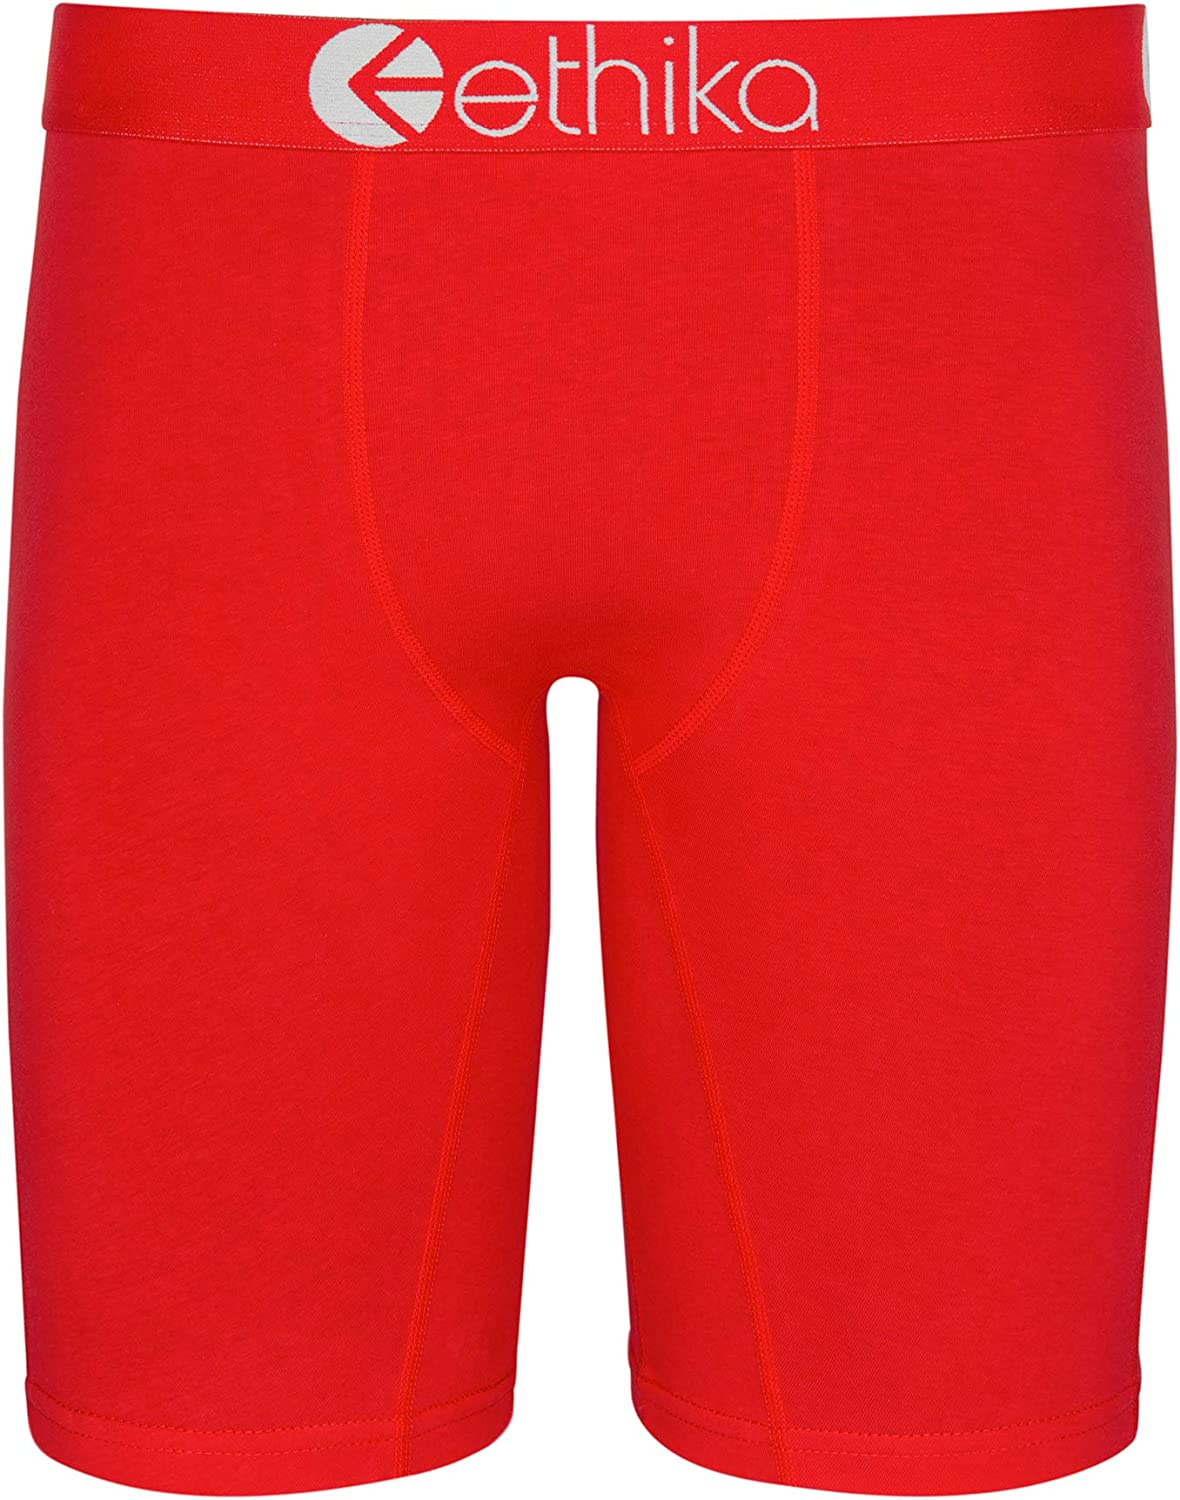 Ethika Mens Staple Max 70% OFF Boxer Machine Credence Red Briefs